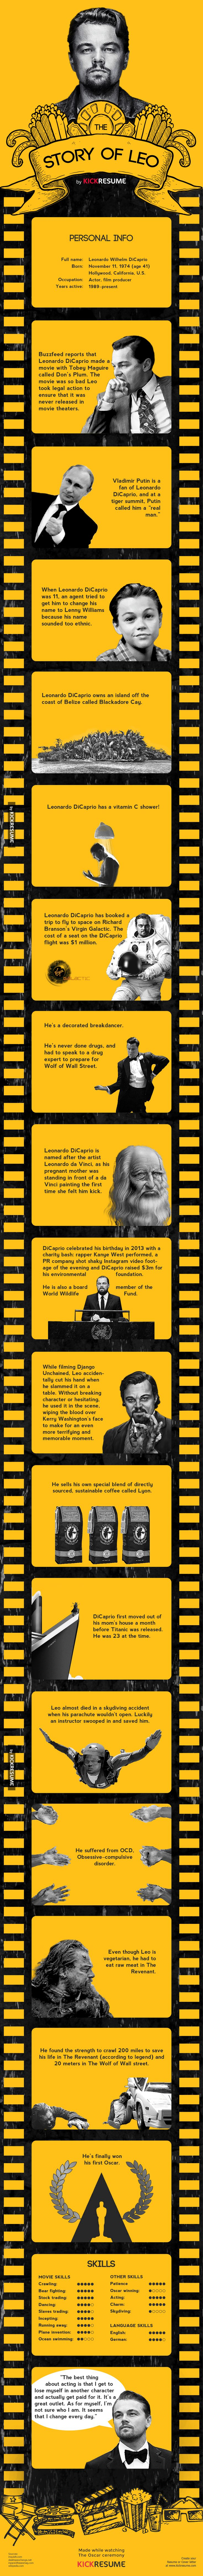 Resume of Leonardo DiCaprio: Surprising Facts You Didn't Know  [Create perfect resume in minutes www.kickresume.com]